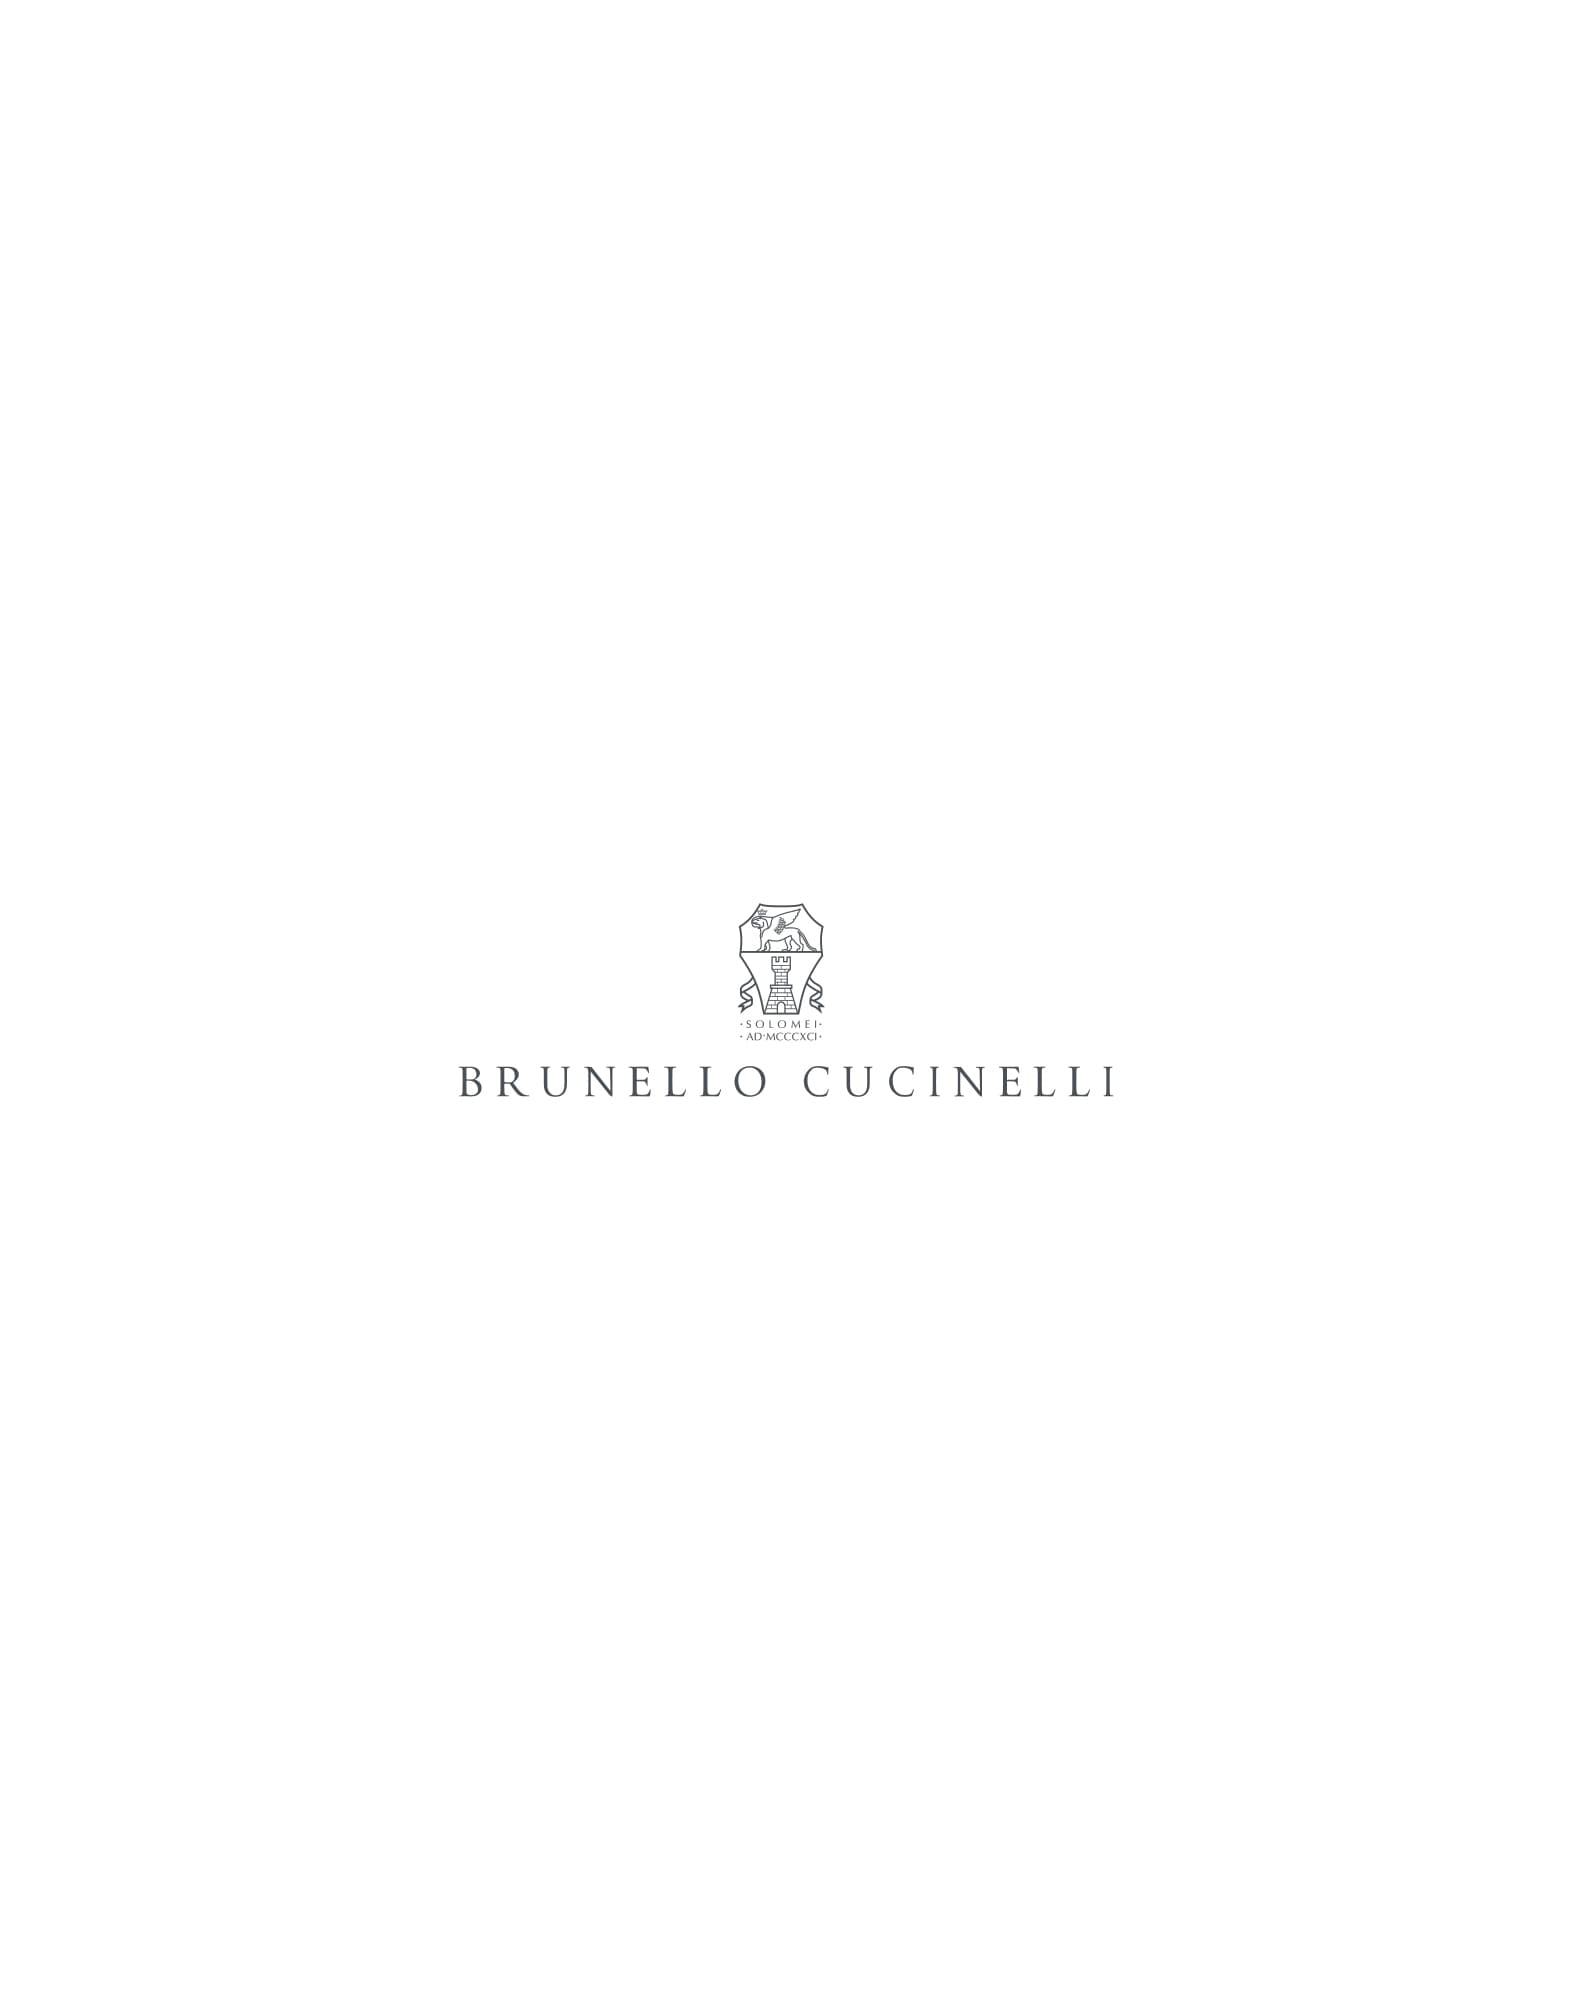 Shirt dress White Woman - Brunello Cucinelli